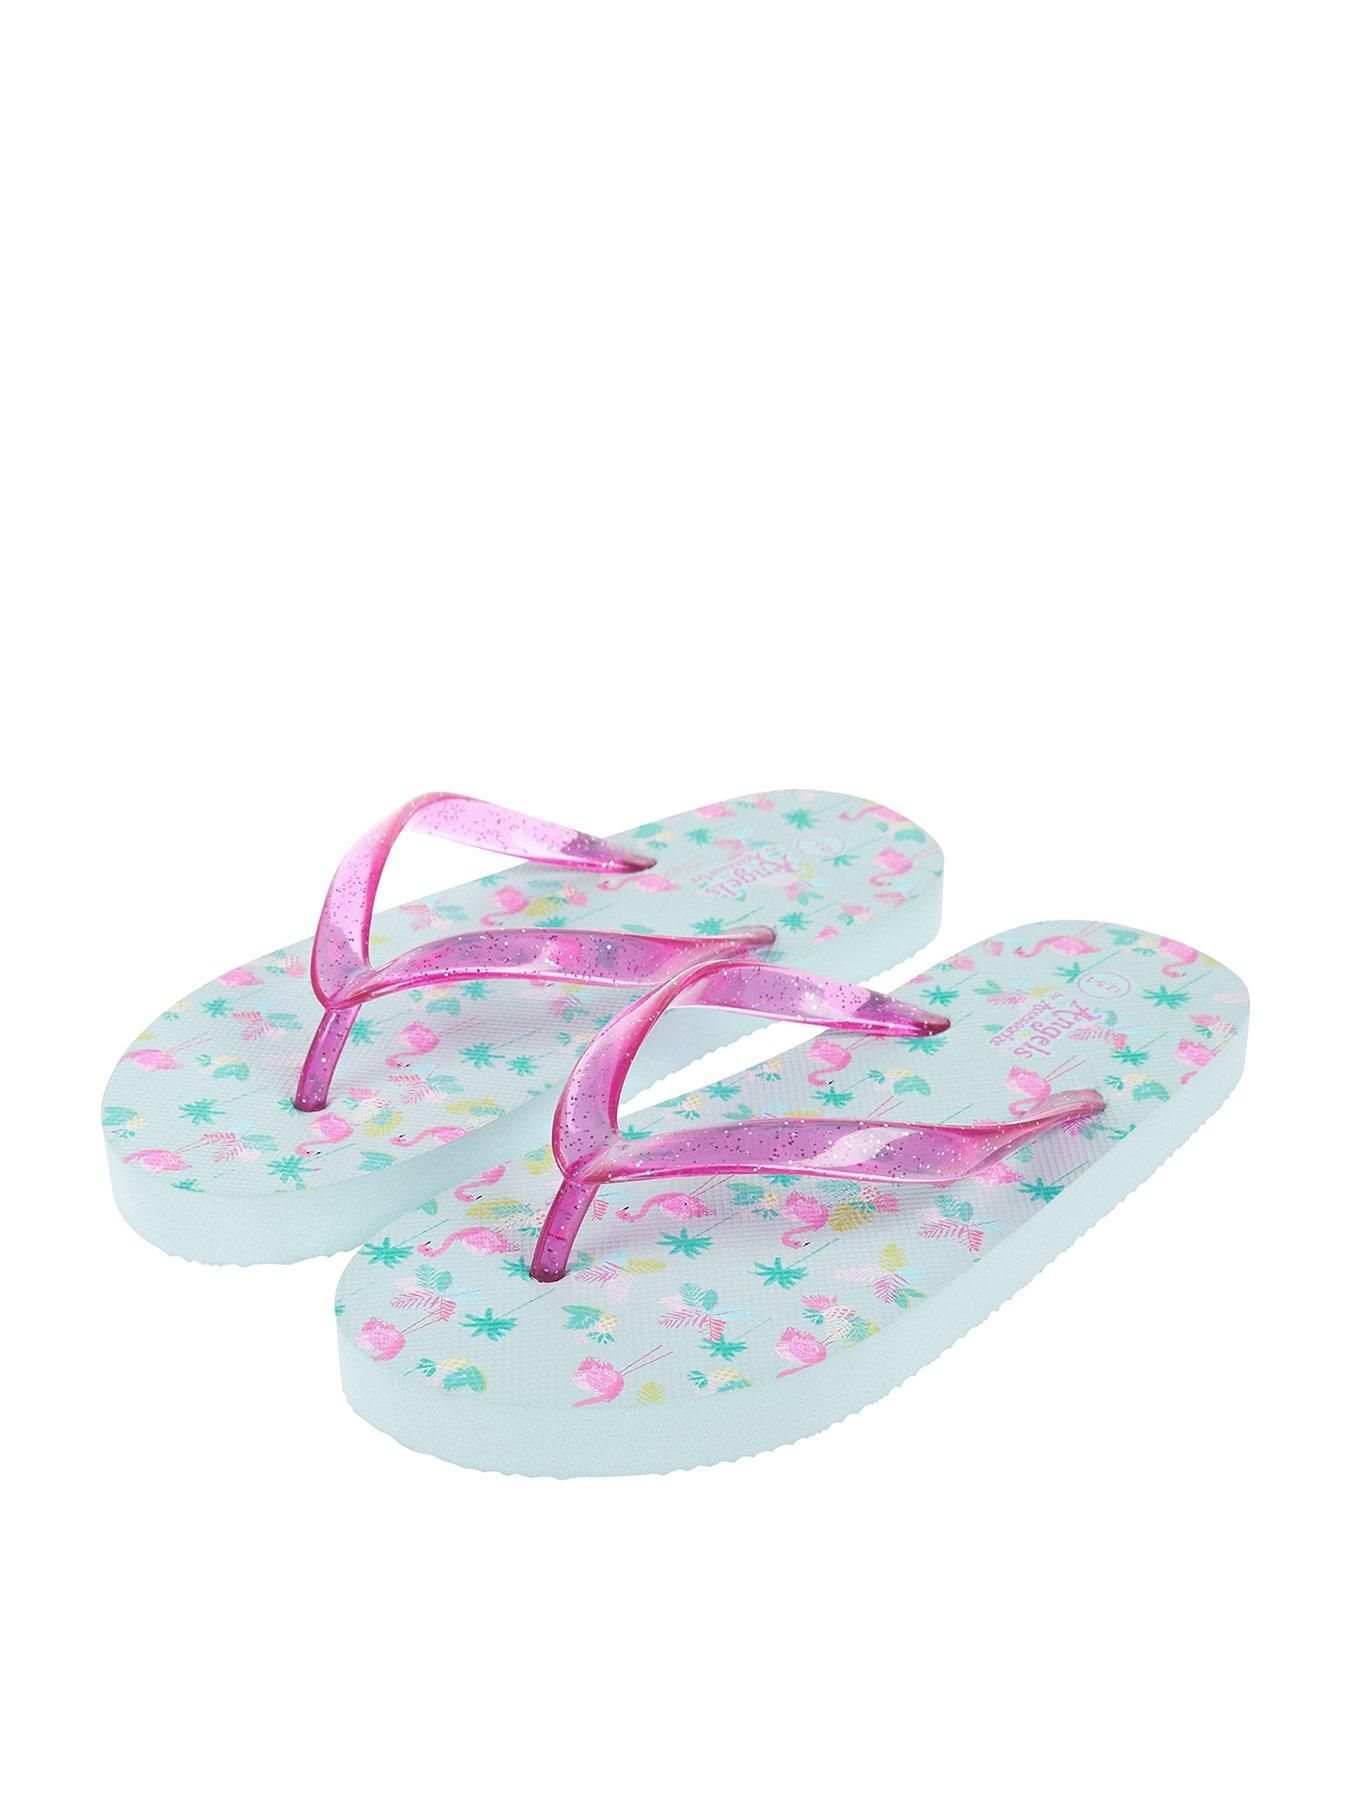 2ec7a0d7f142 Accessorize Tropical Flamingo Print Eva Flip Flop